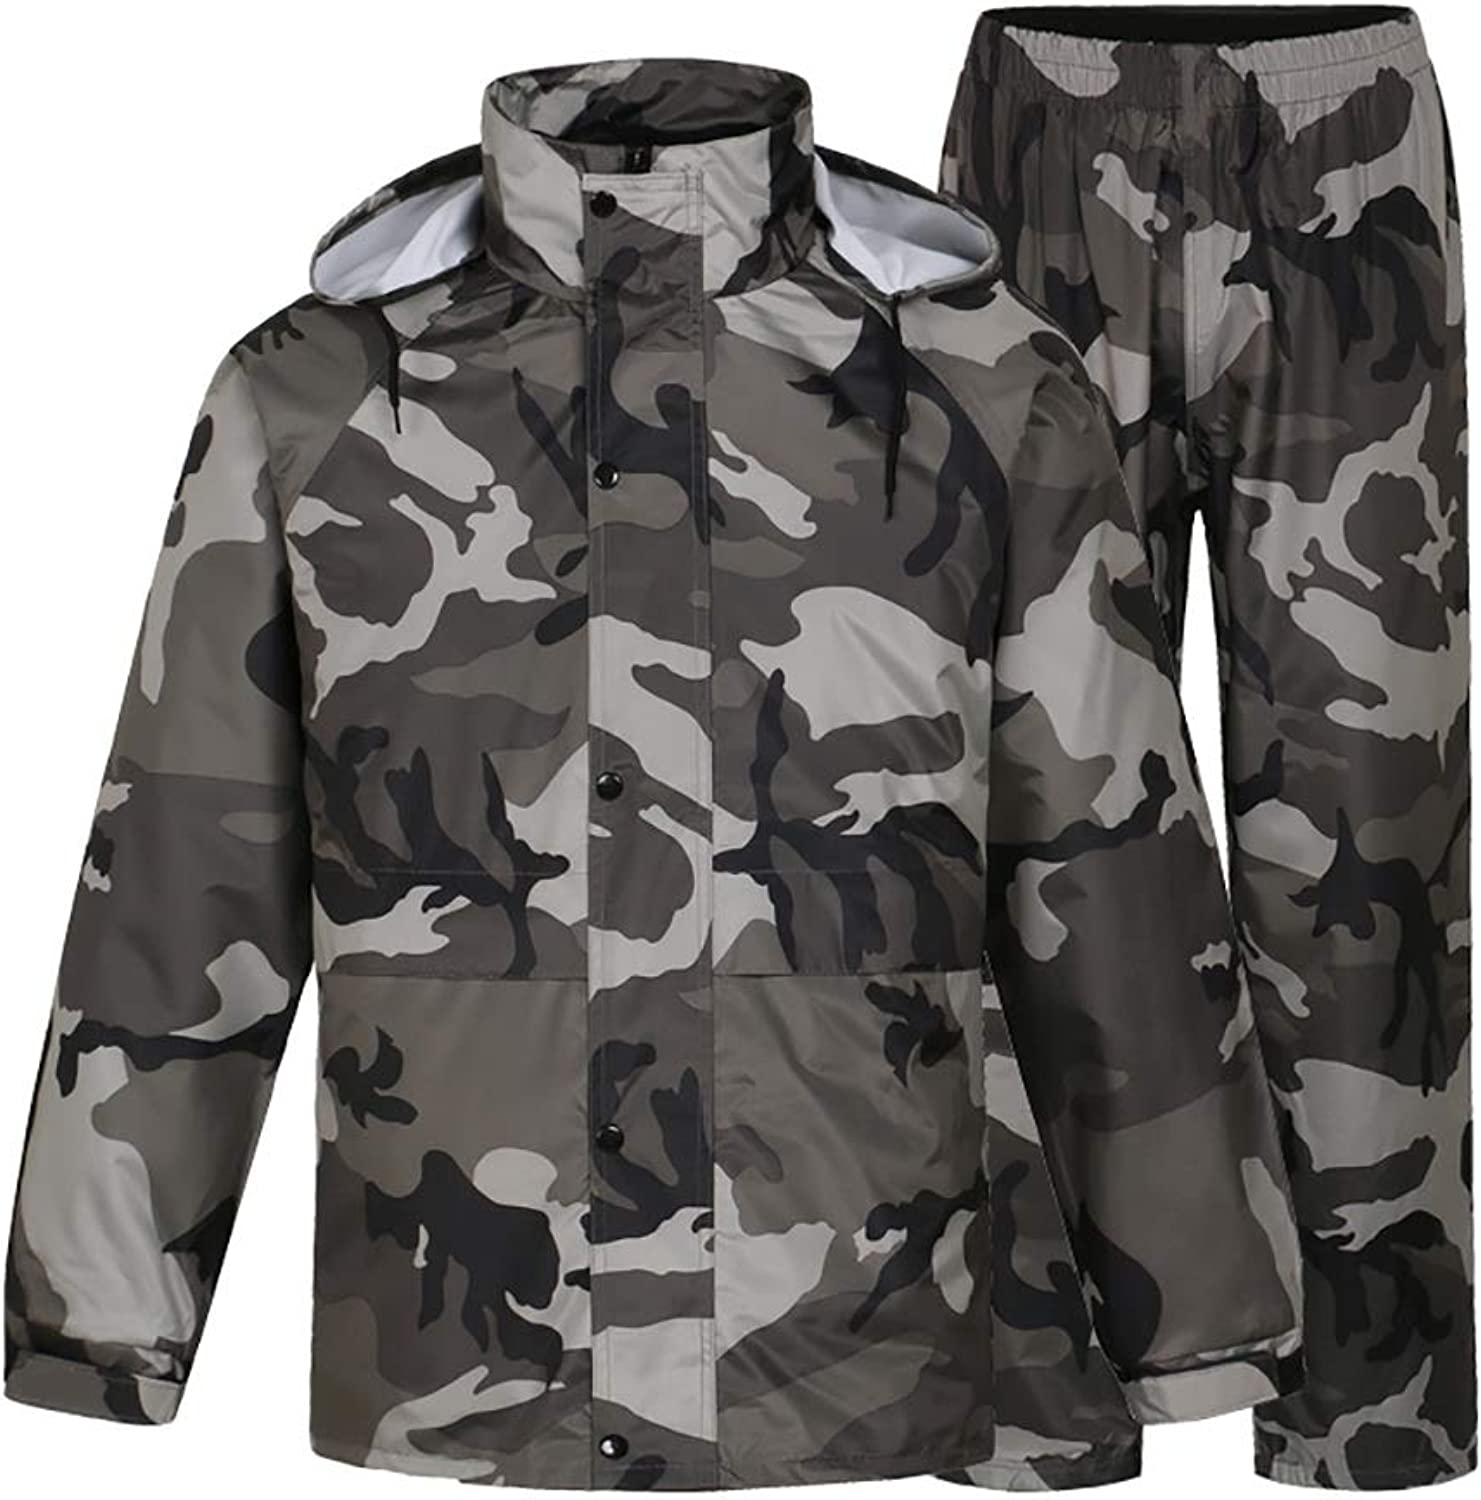 Raincoat Trouser Split Suit Camo Adult Waterproof Bicycle Motorcycle Riding Work Camping Fishing (Size   XXXL)